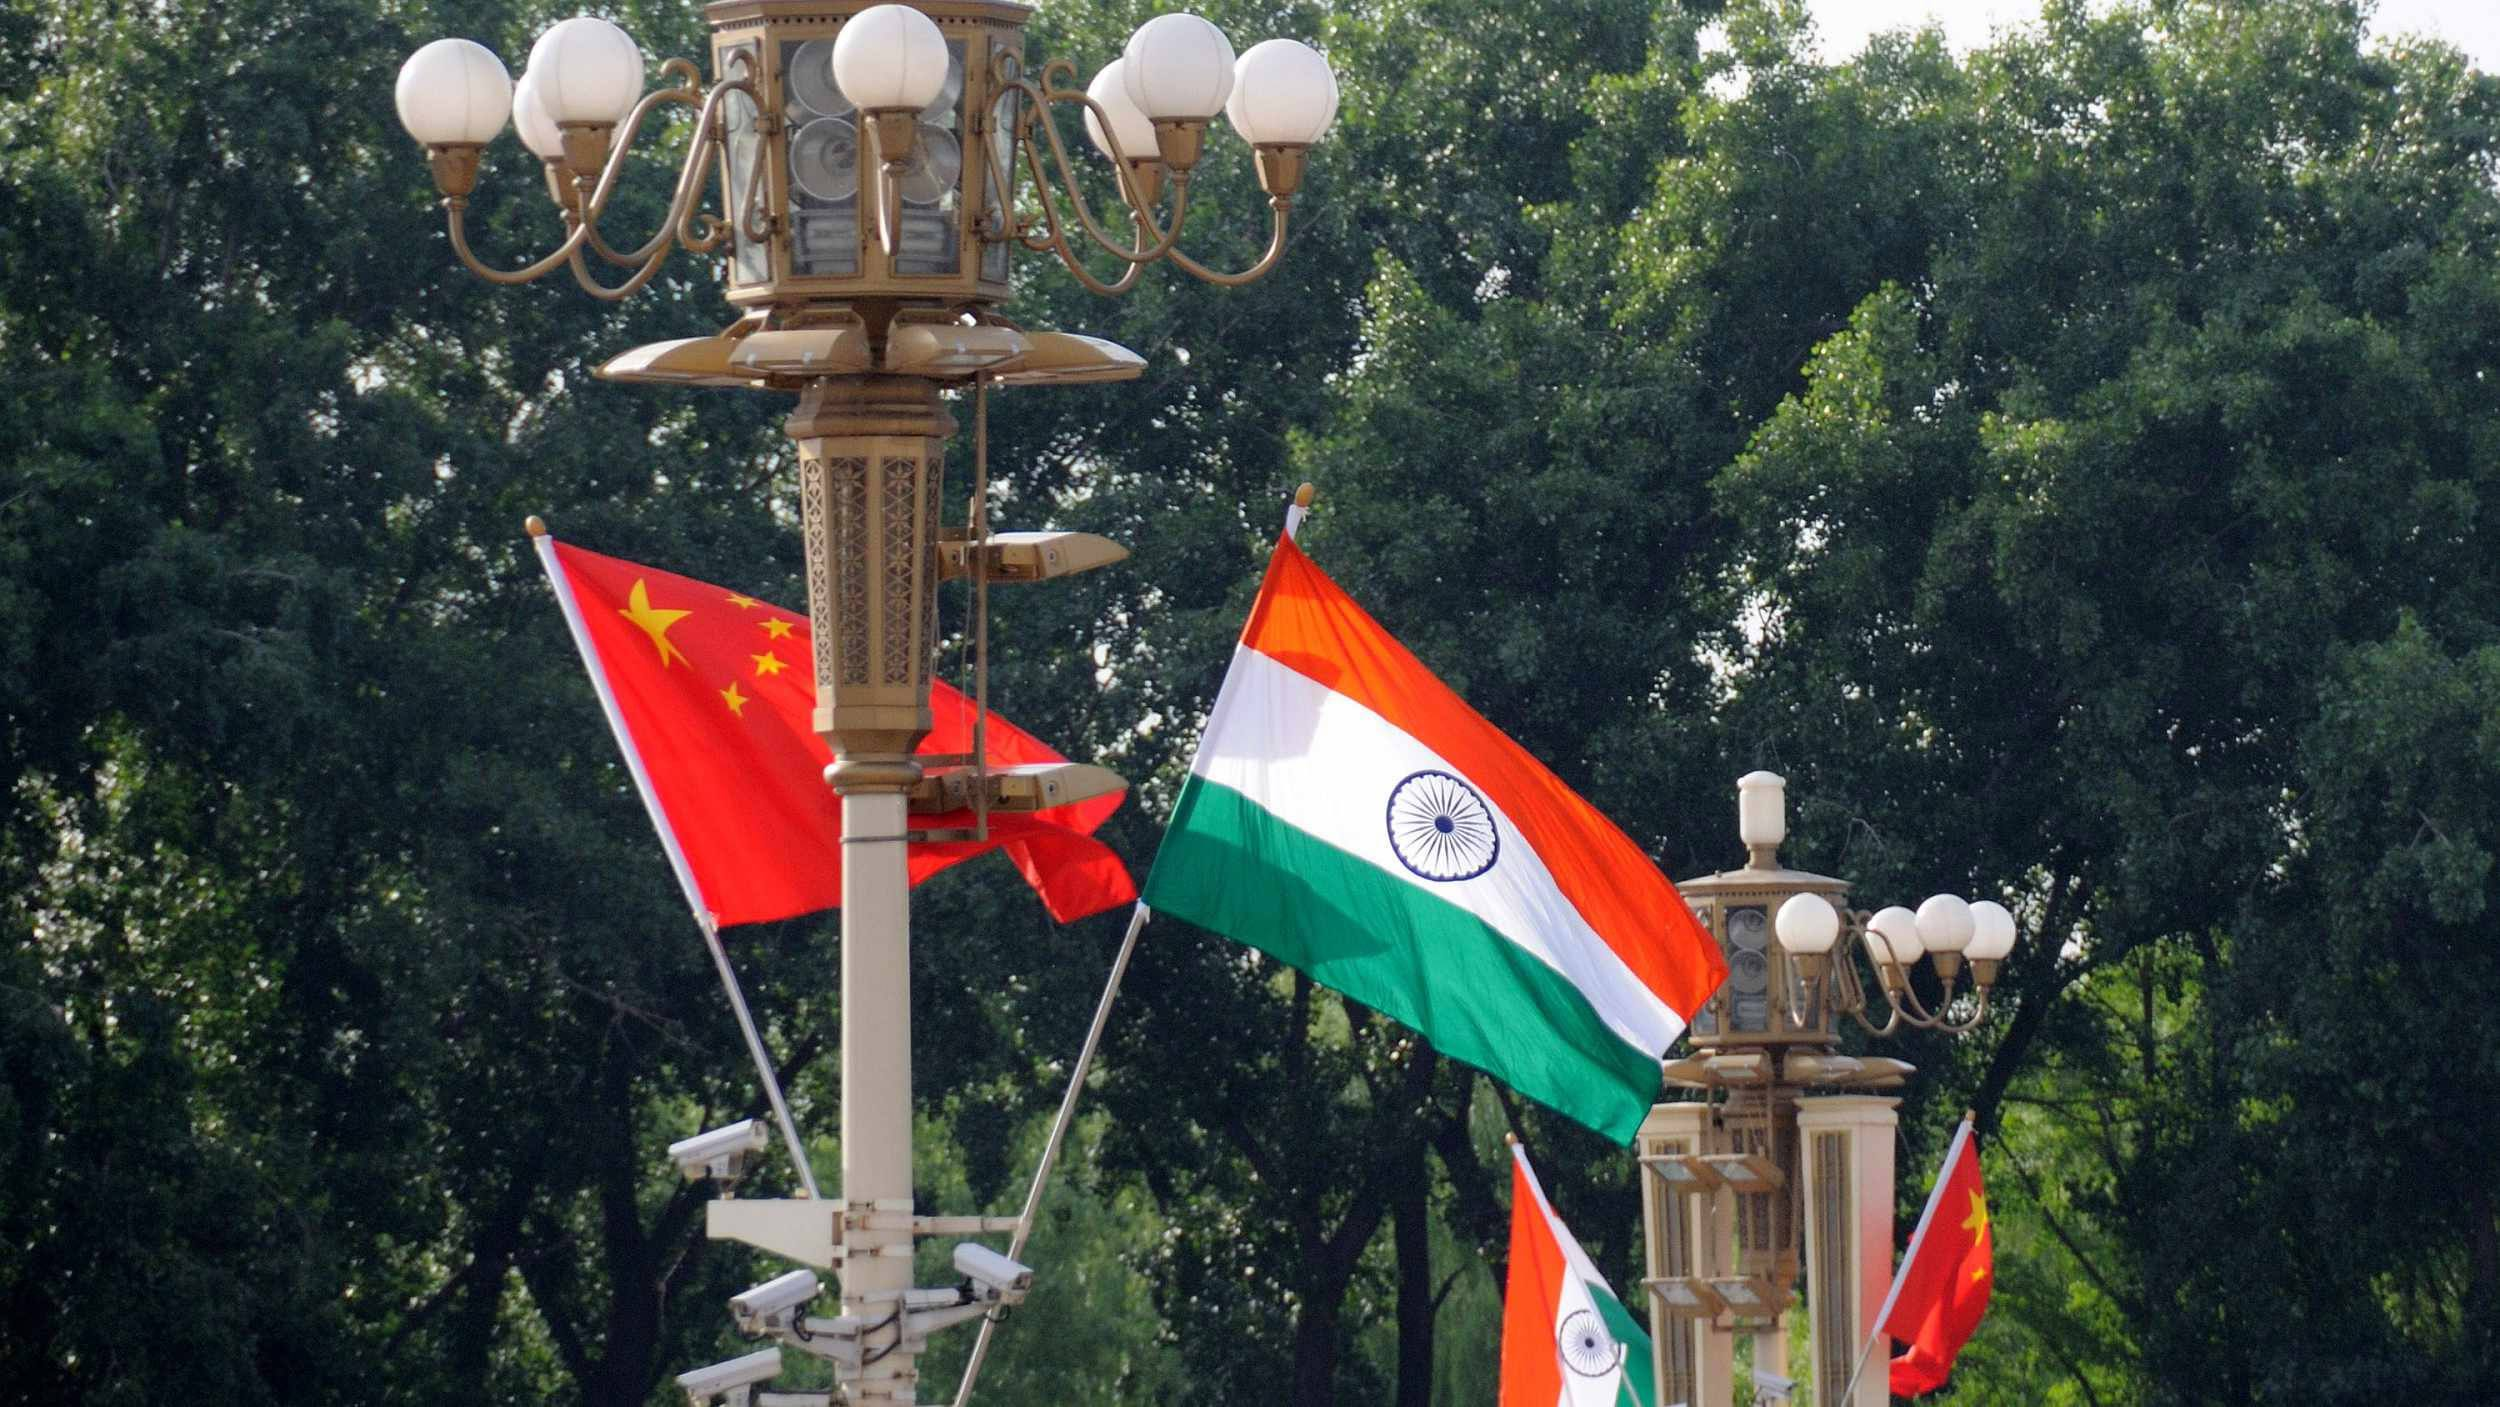 China's envoy urges India to properly handle differences and bring ties back on track